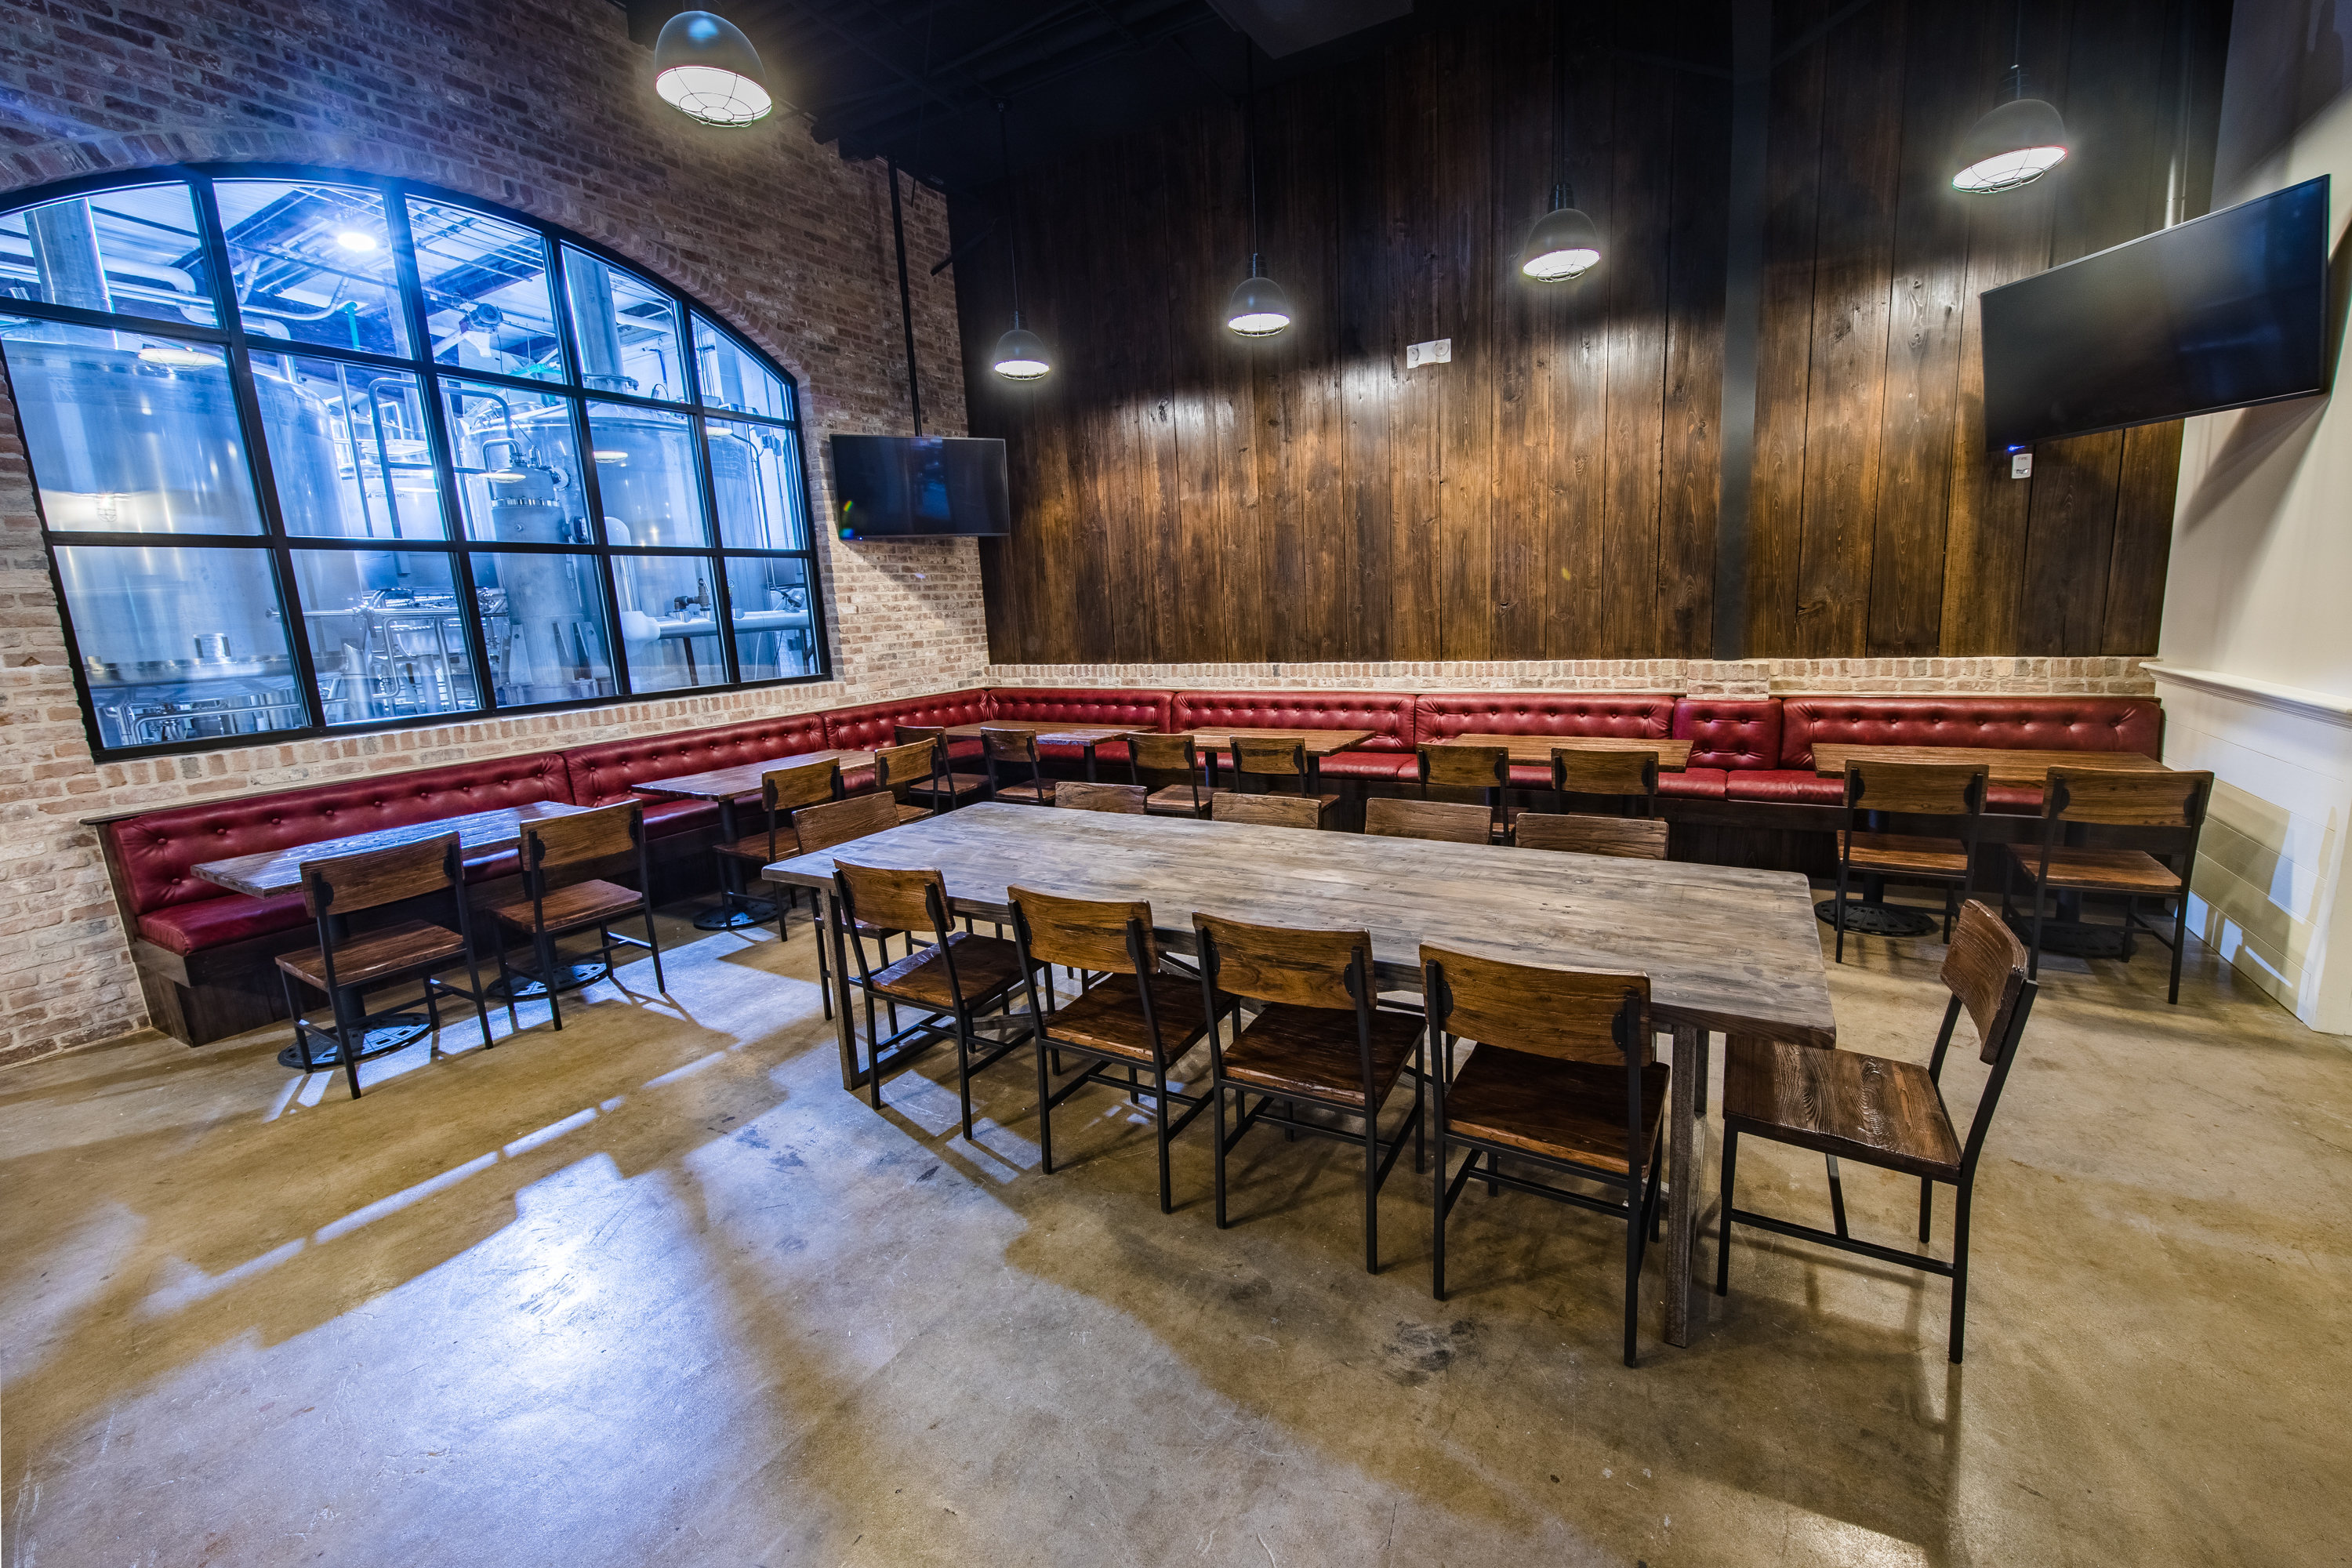 The Design Features Wood, Brick, Red Leather Banquettes, Evoking Old New  Orleans. Josh Brasted